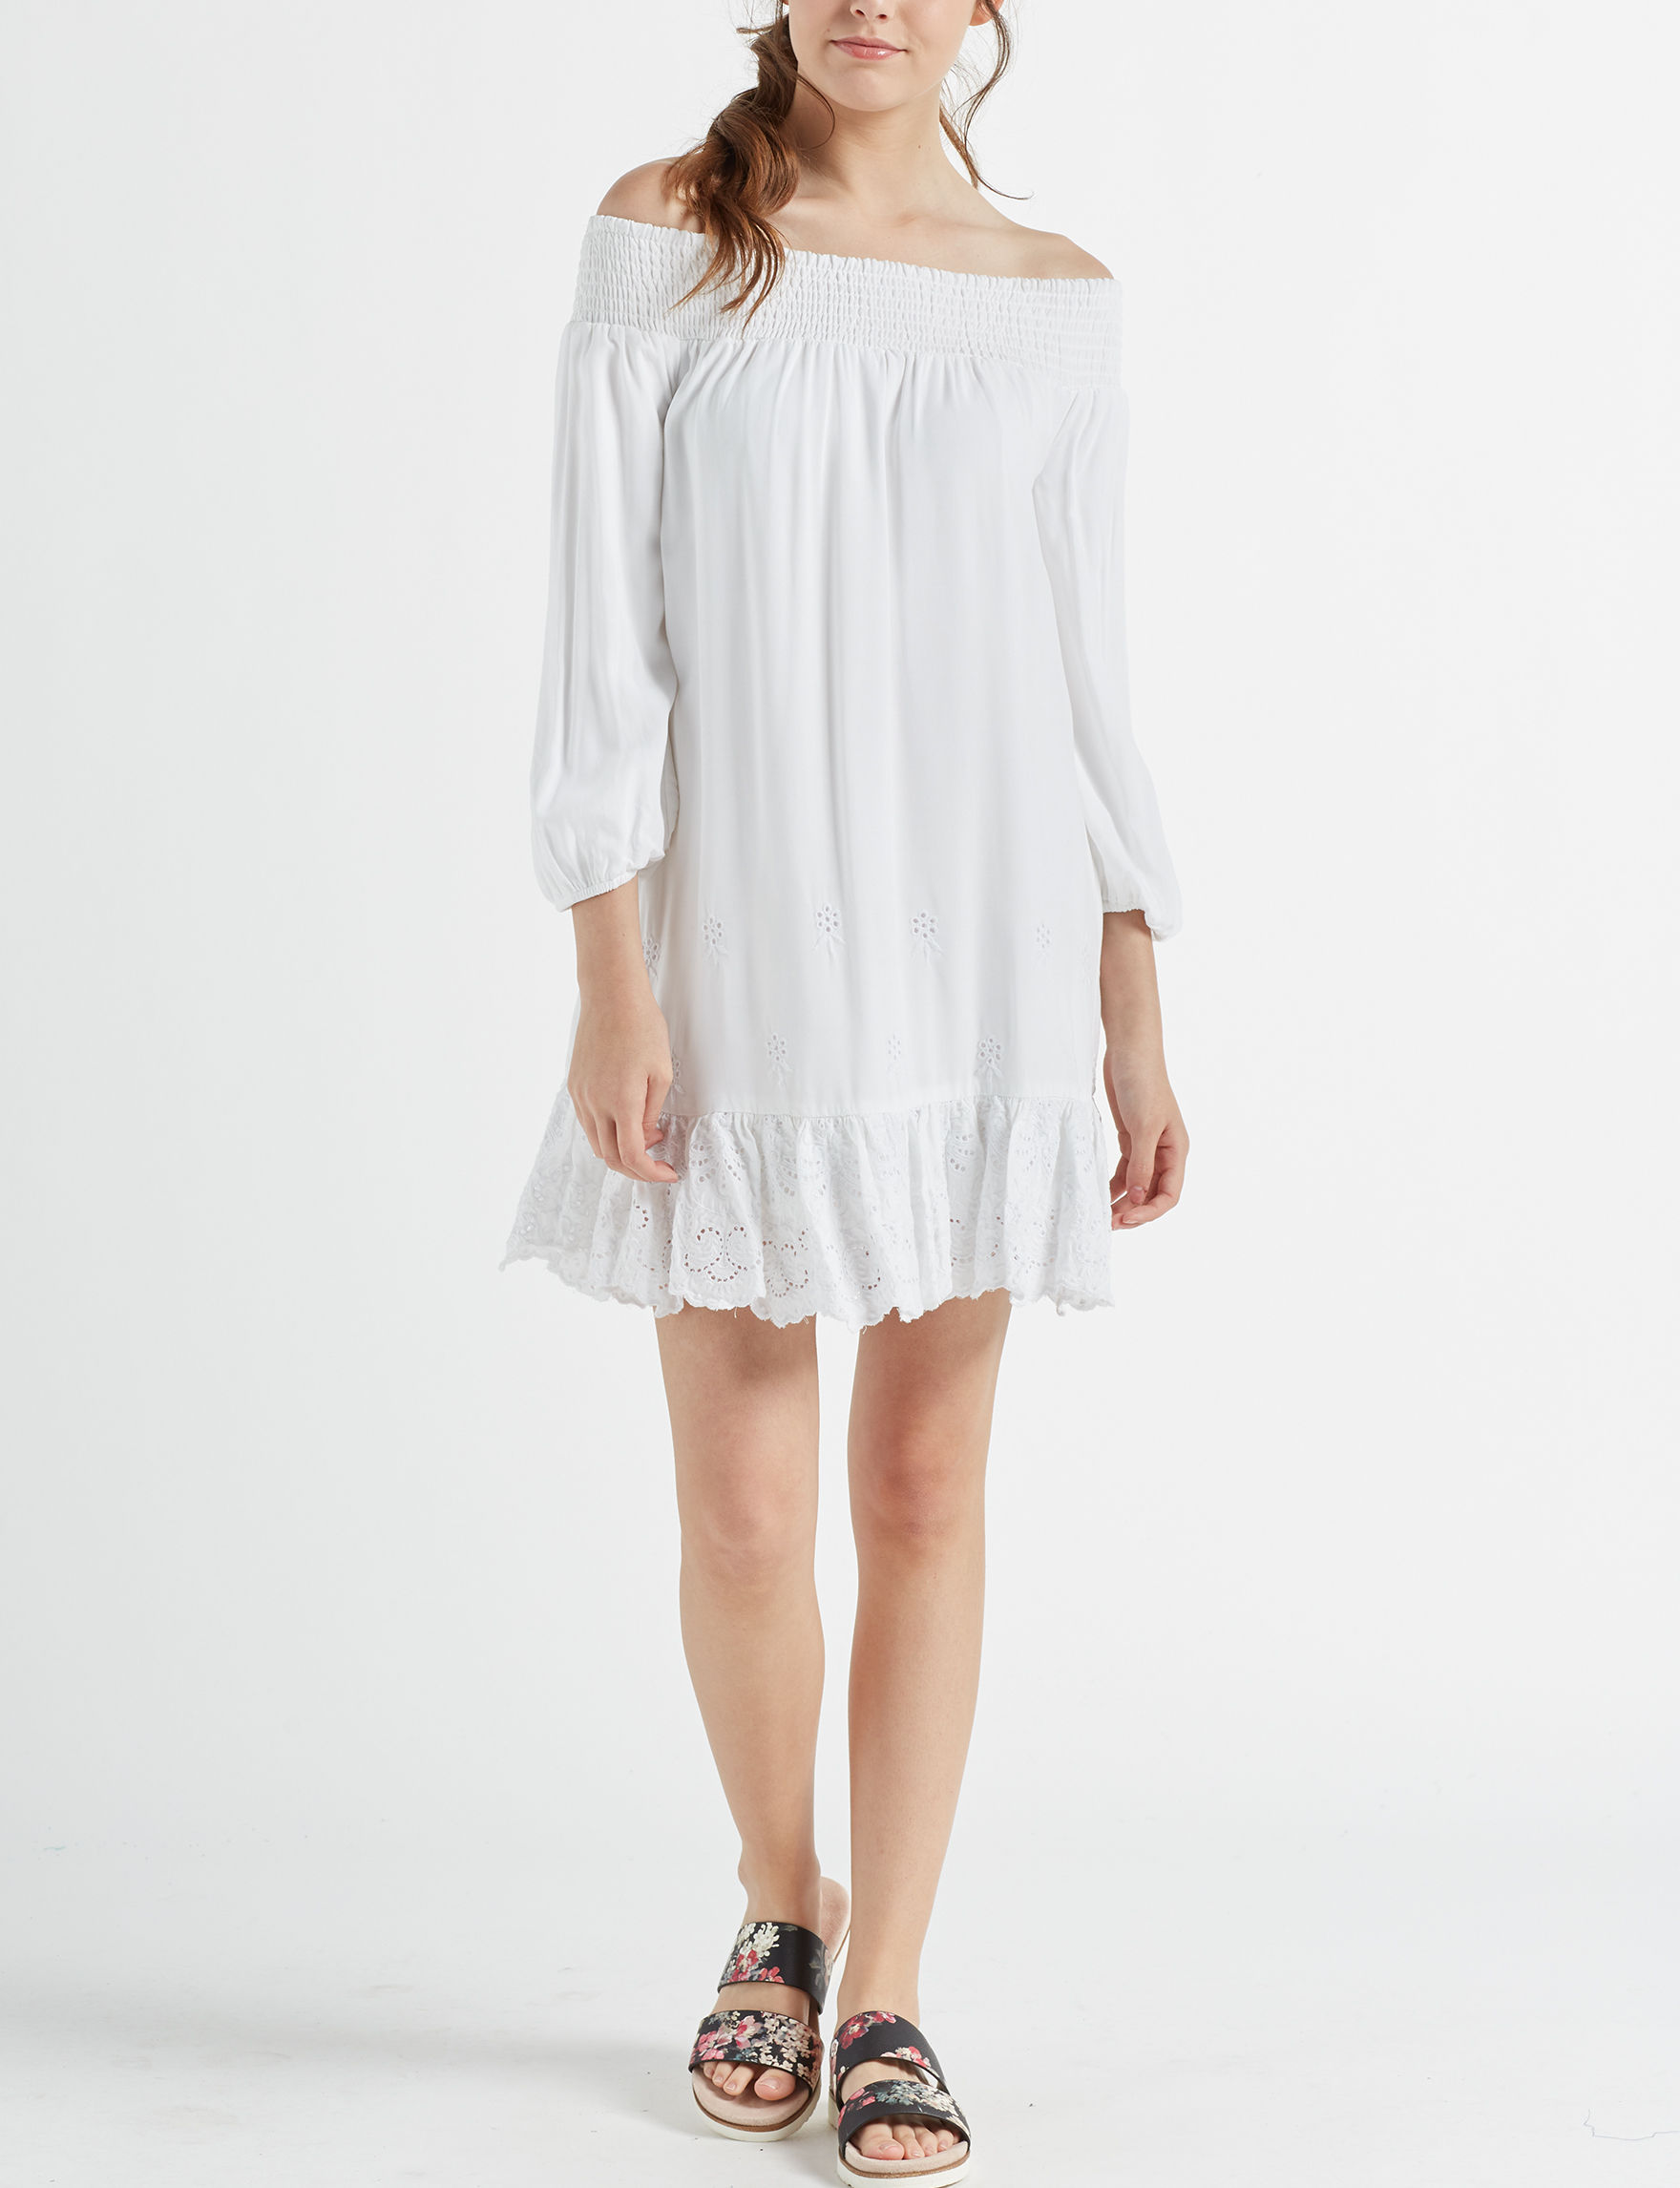 Love Fire Ivory Everyday & Casual Shift Dresses